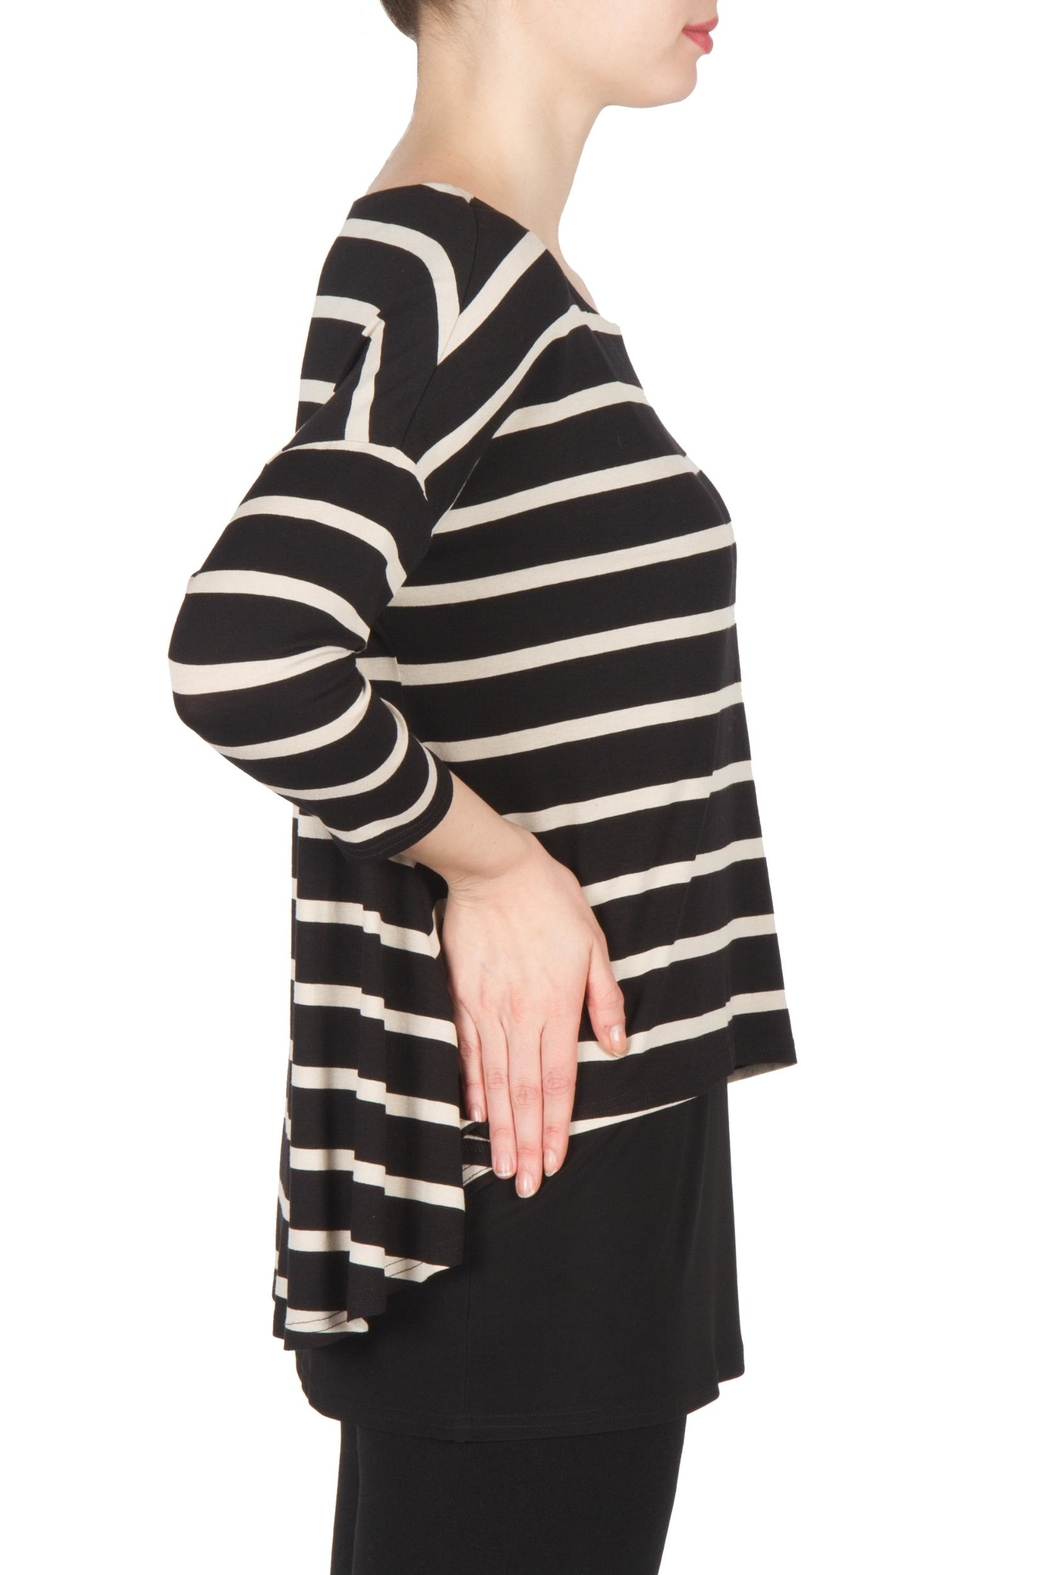 Joseph Ribkoff Striped Tunic Top - Front Full Image